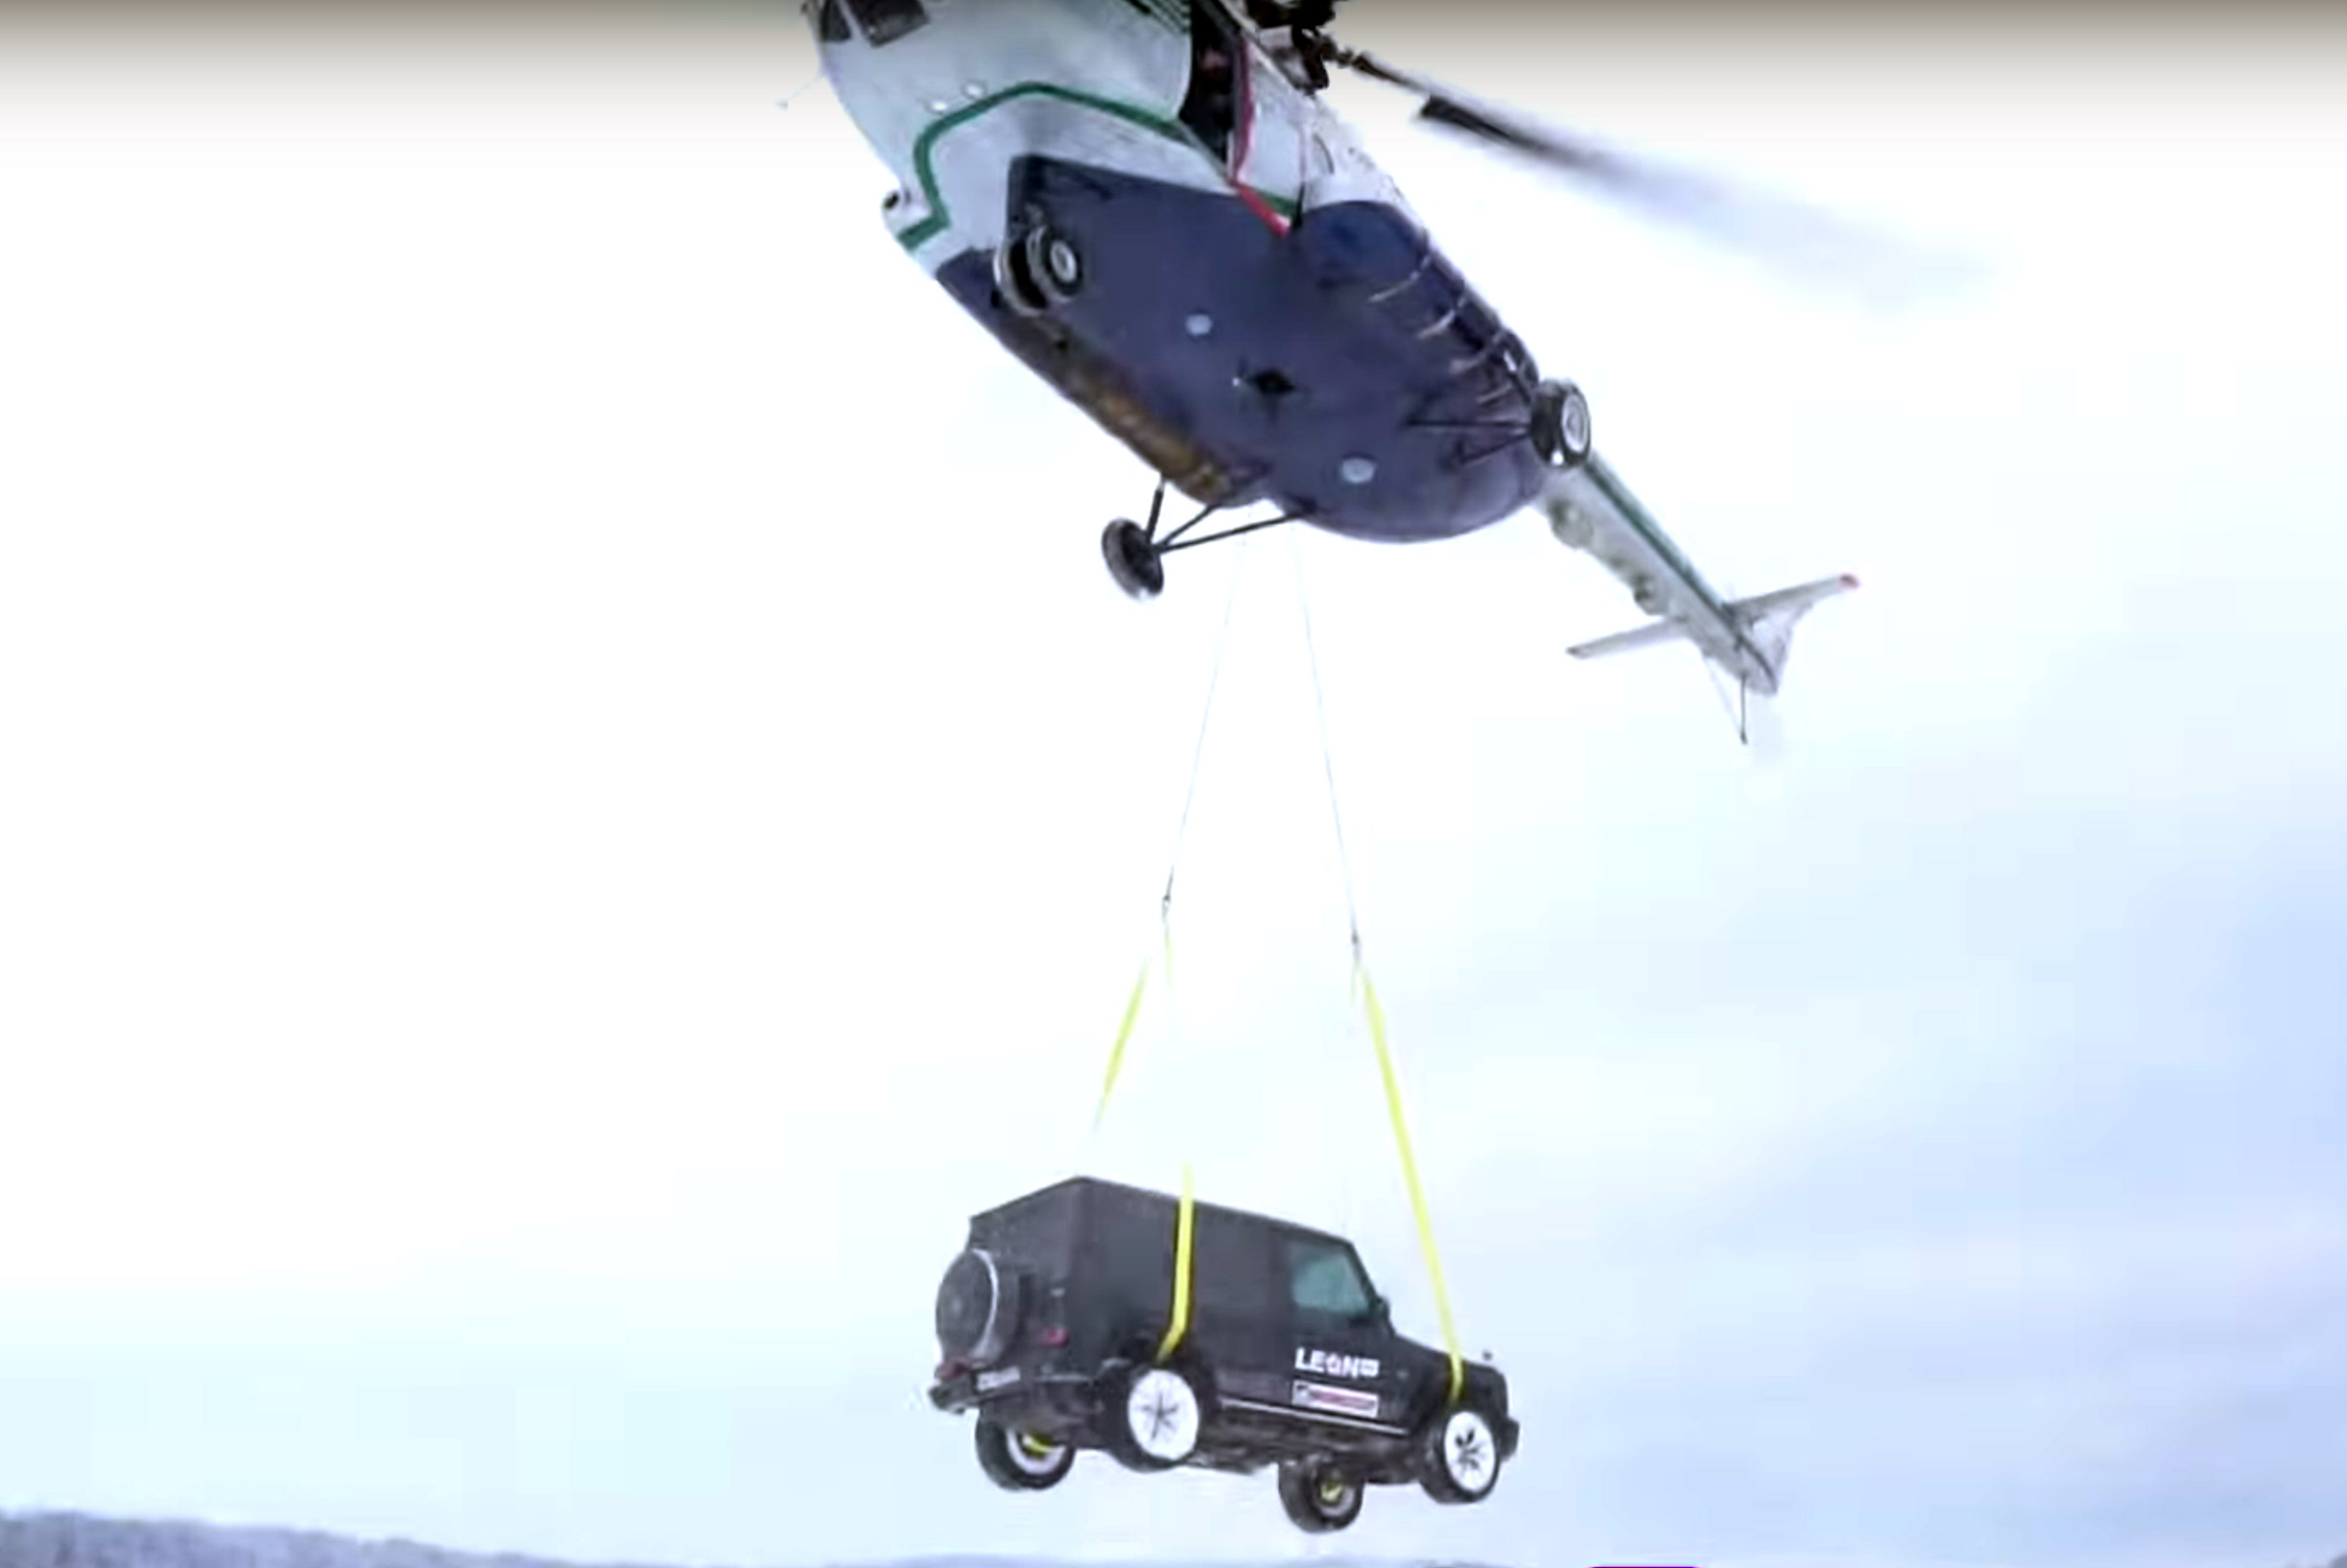 Drop AMG G63 Helicopter